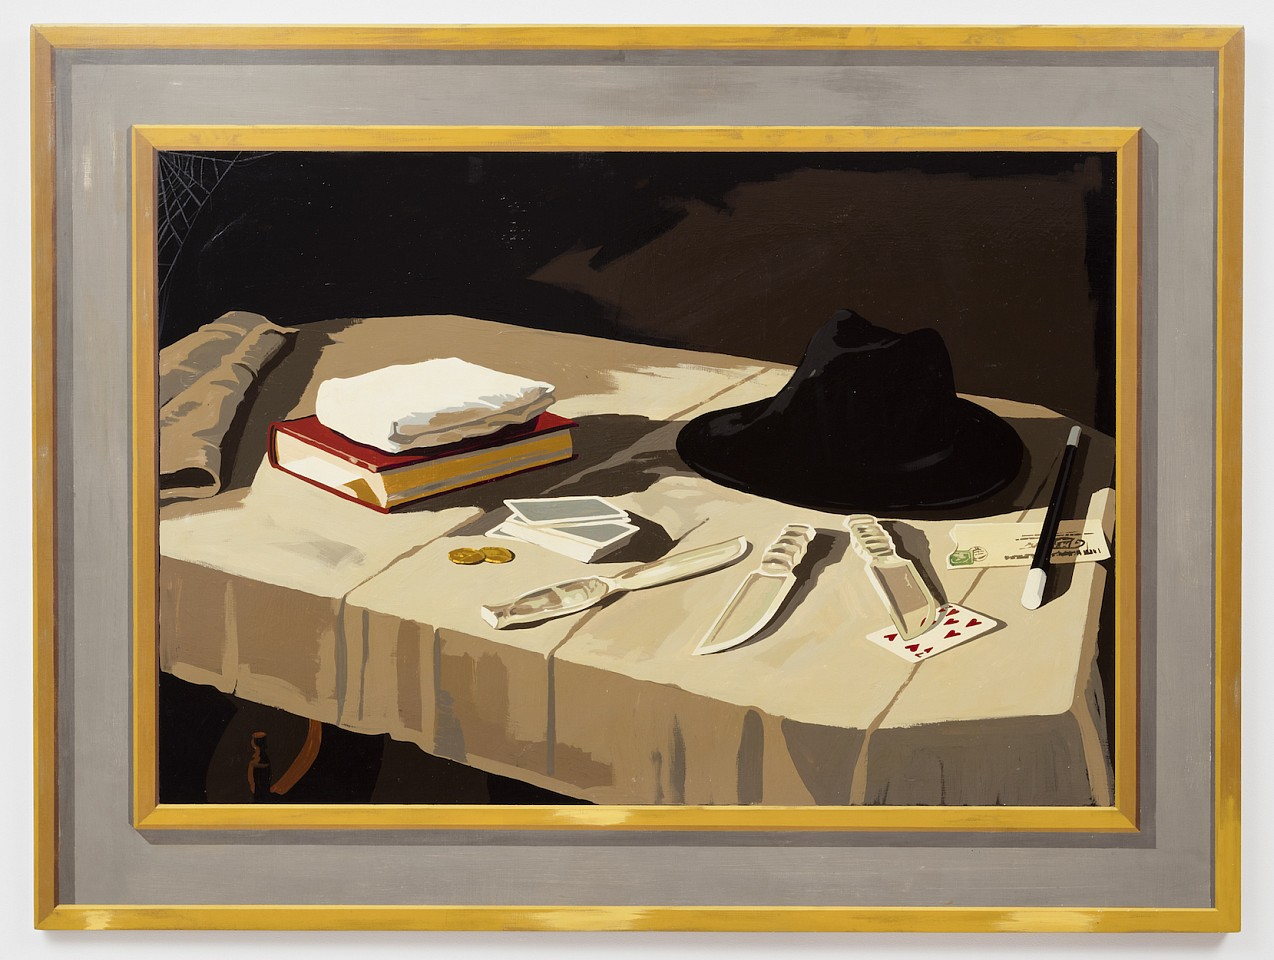 Matthew Benedict ,   The Black Borsalino  ,  2001     gouache and Damar on wood     36 x 48 in/91.5 x 122 cm     MATB-01-PA-078/R